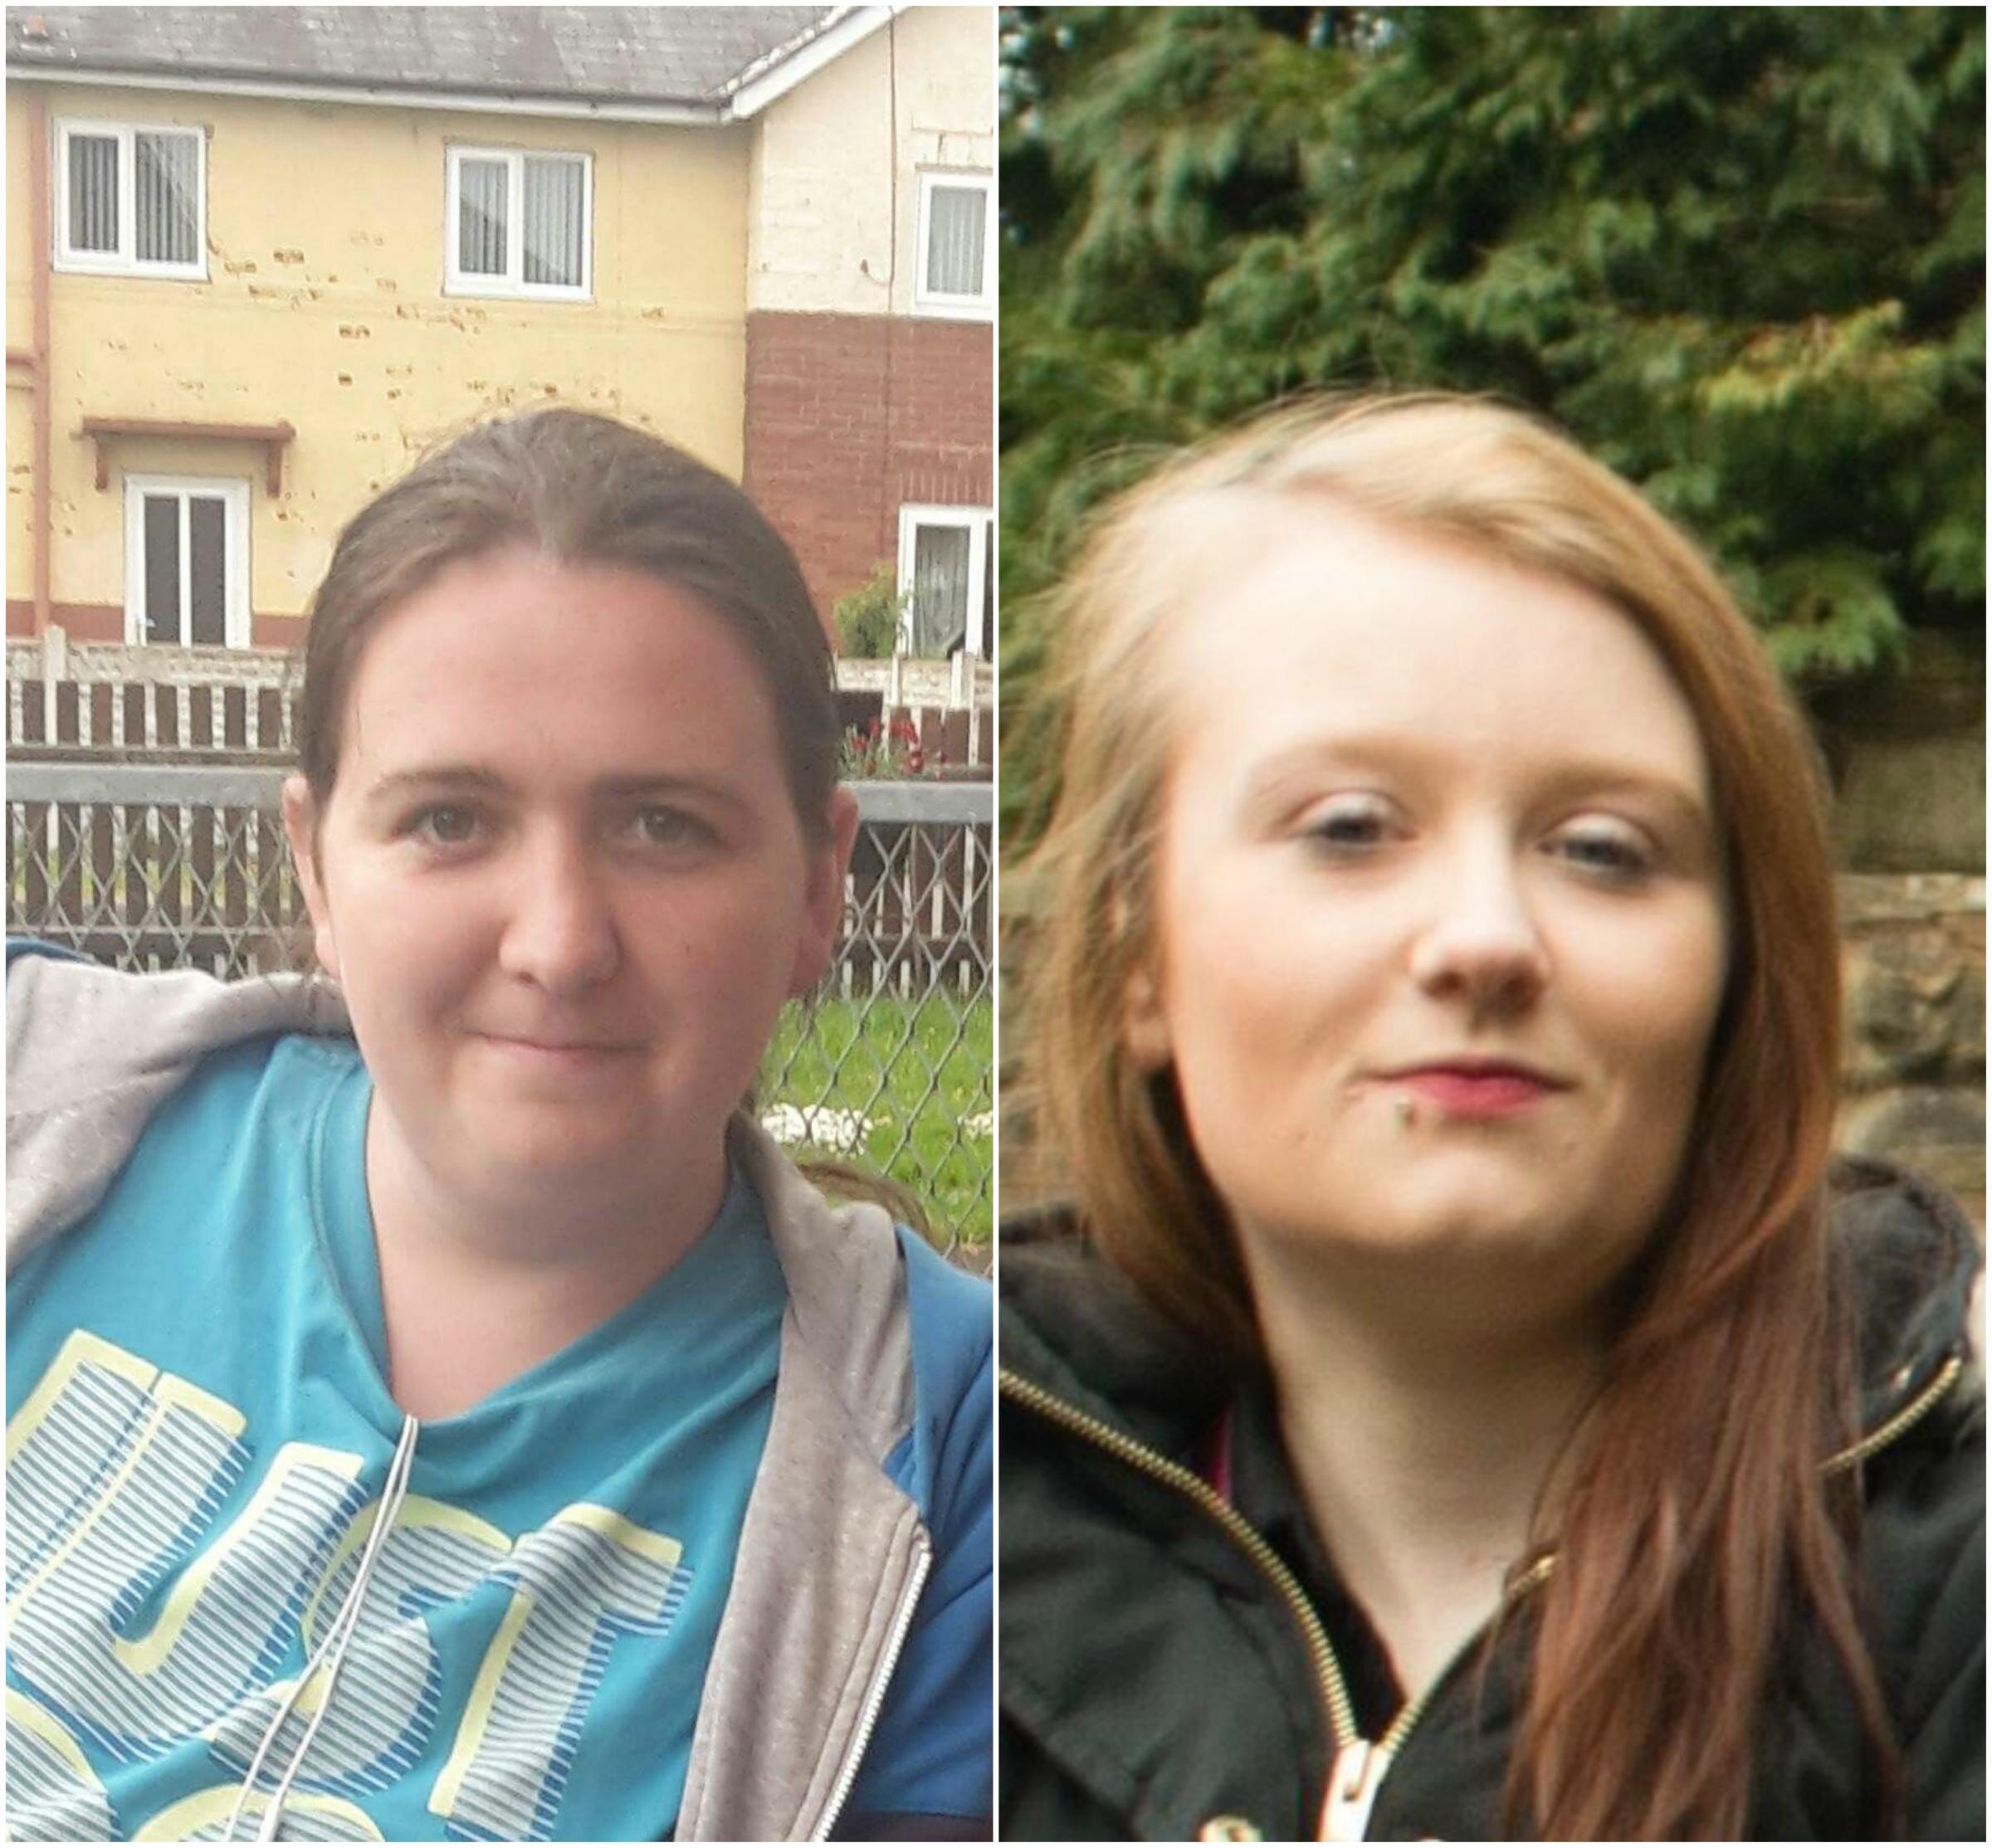 Rachel Murphy and Shelby Maher who died after being hit by Mohmed Salman Patel